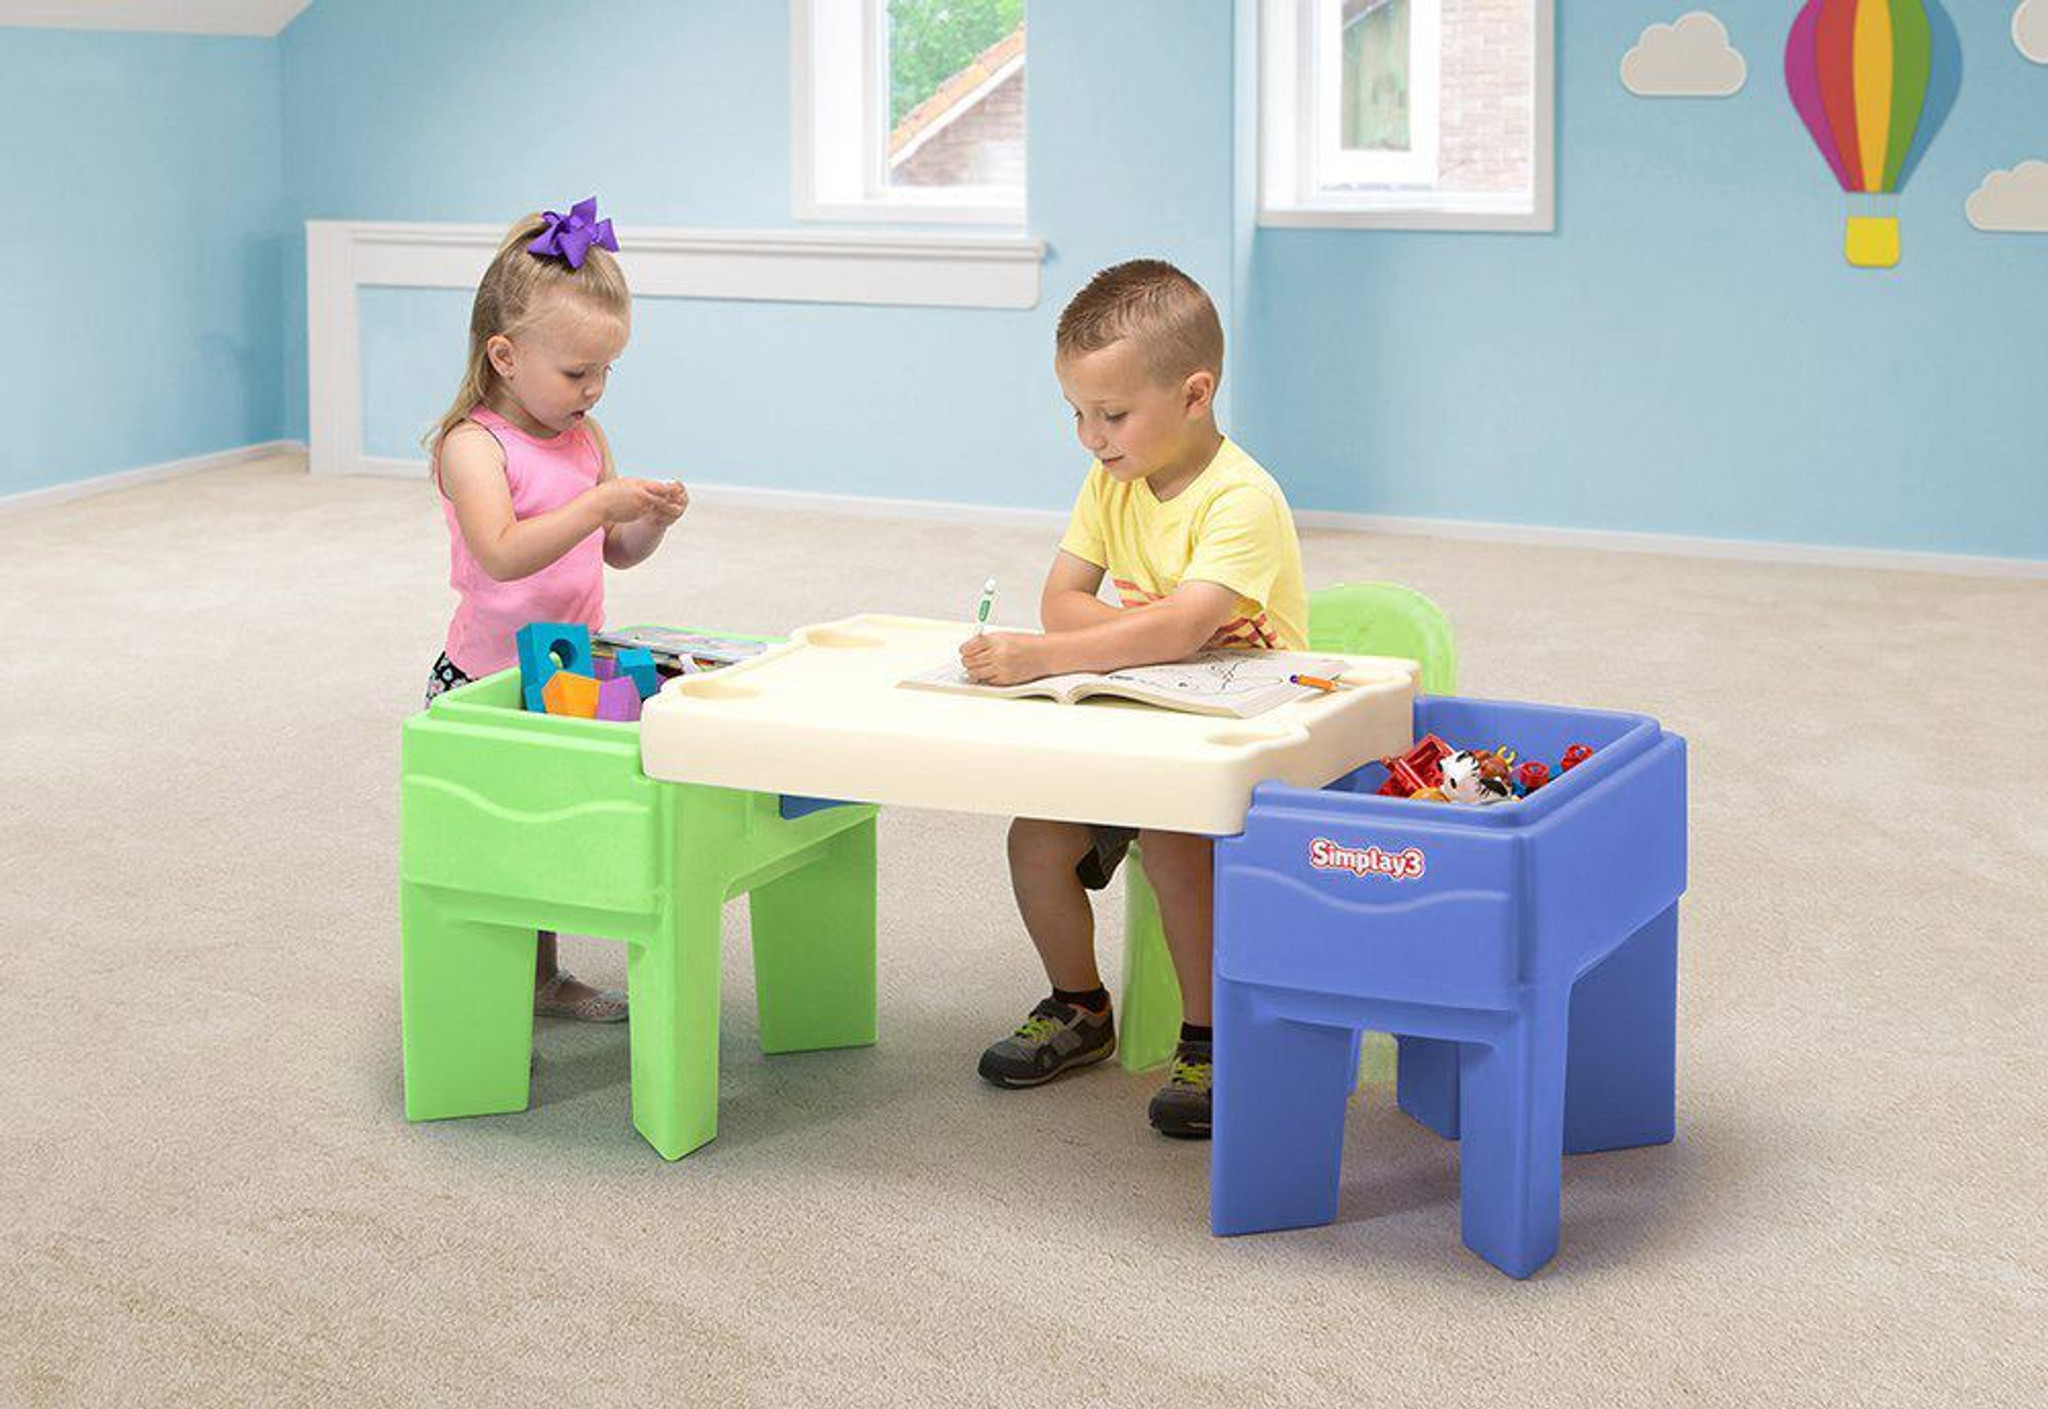 ... Simplay3 In U0026 Out Activity Table Configured As A Childrenu0027s Arts And  Crafts Table With Colorful ...